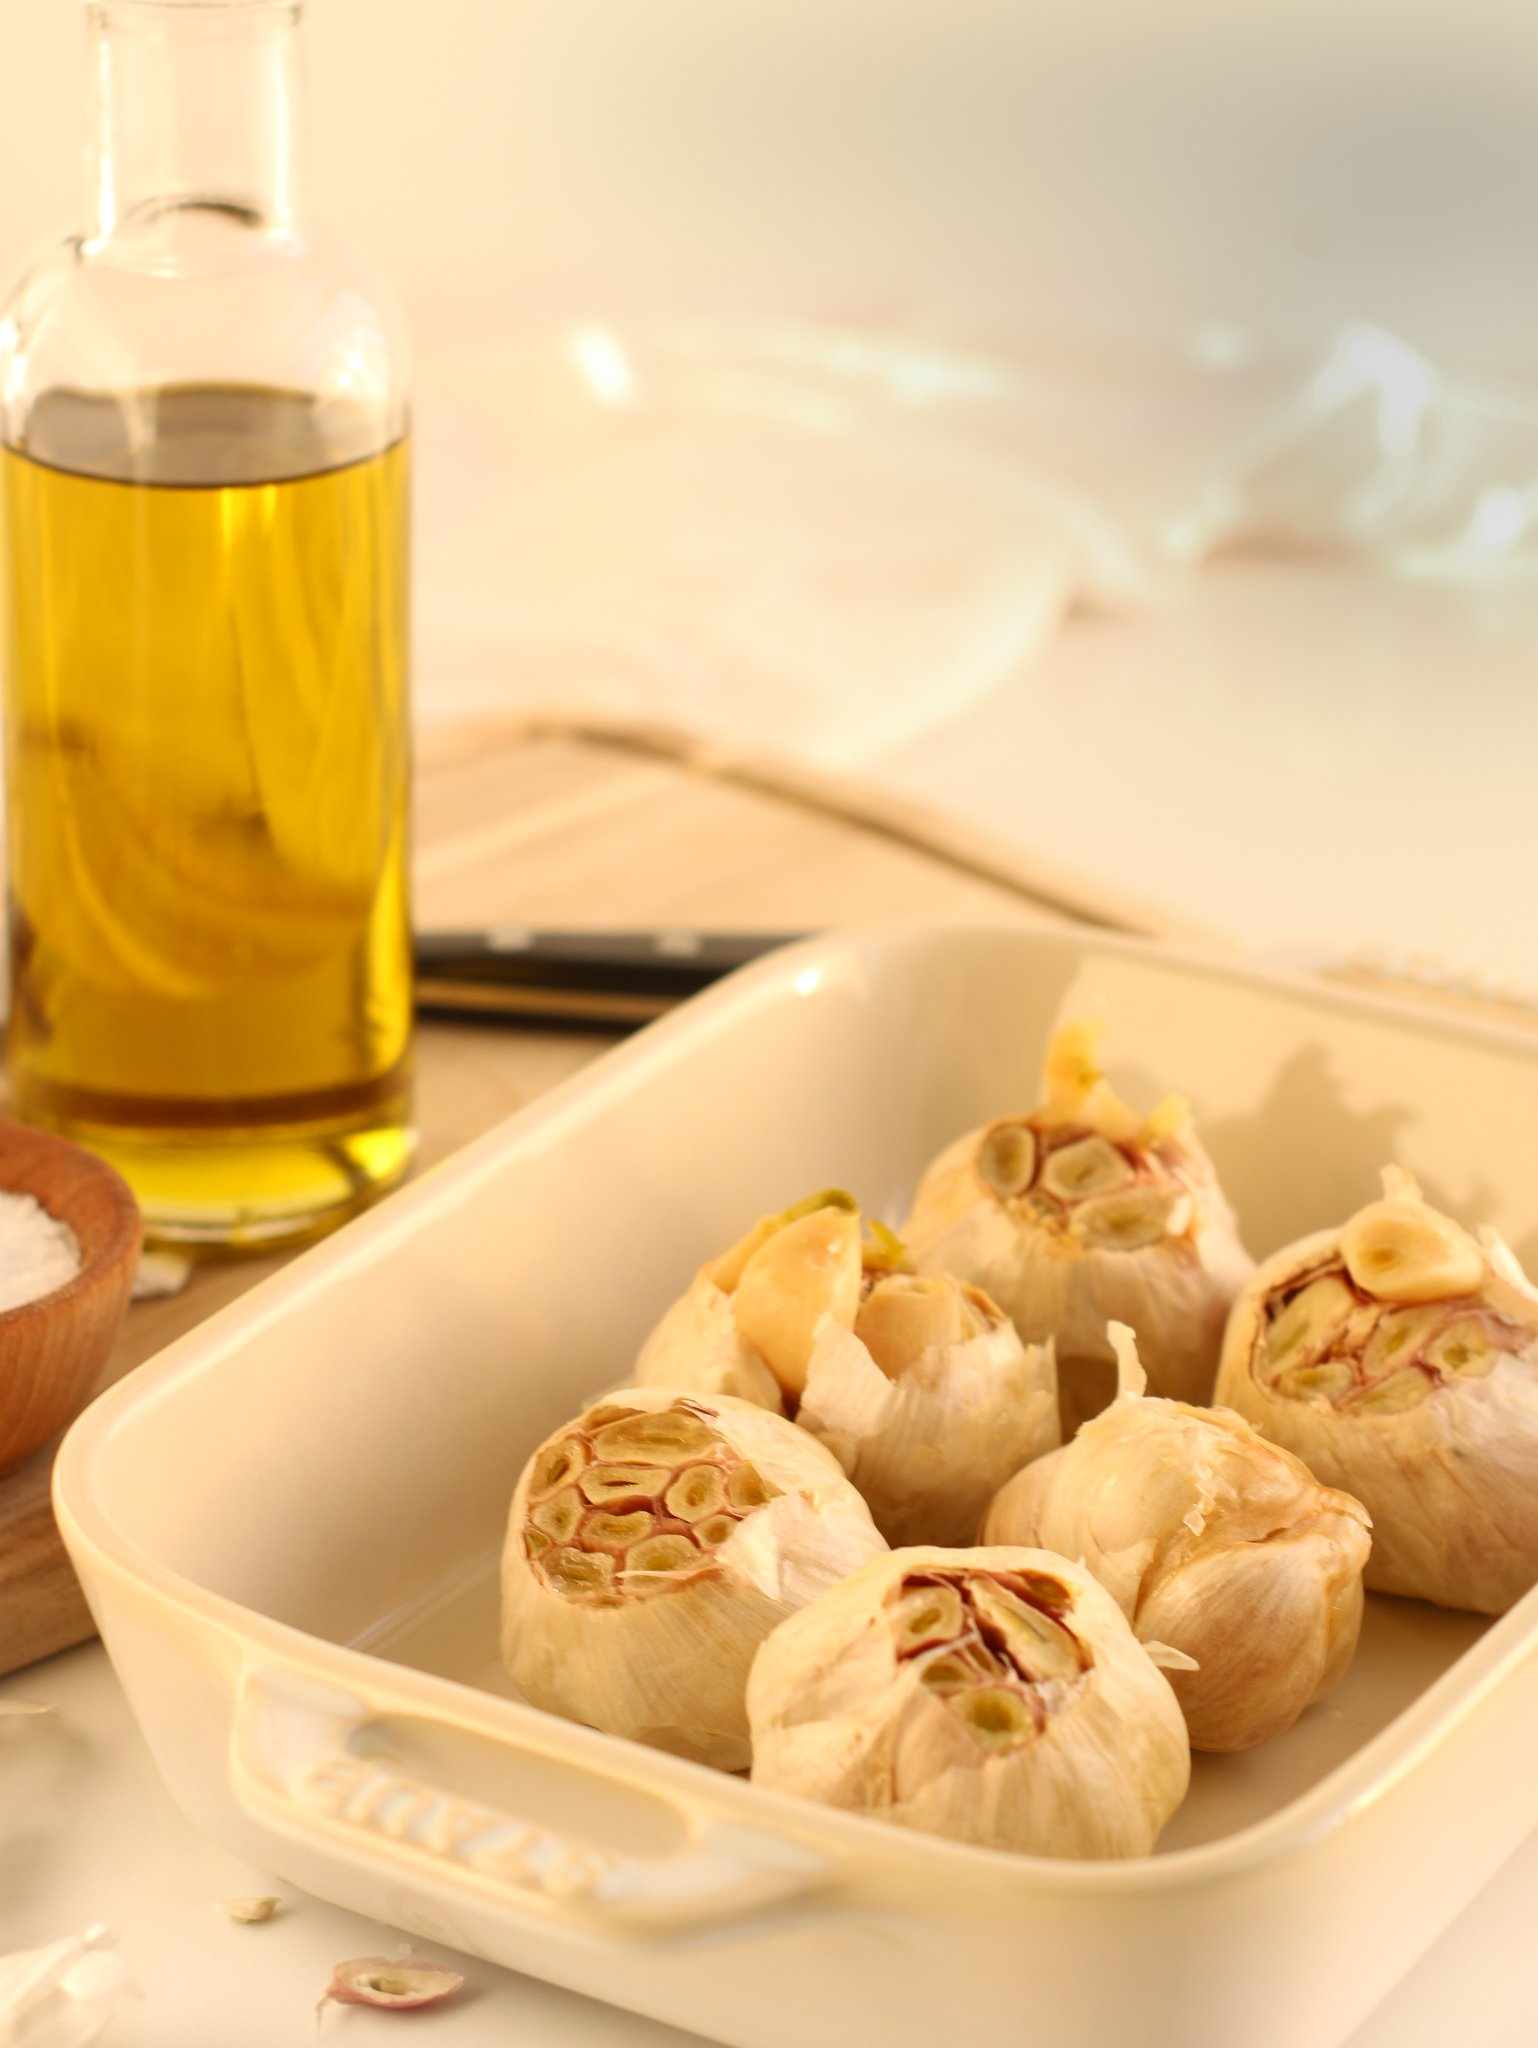 Cooked roasted garlic sitting in a white baking dish surrounded by garlic pieces, a bottle of olive oil and a small ramekin of salt ready to be used or stored for later.